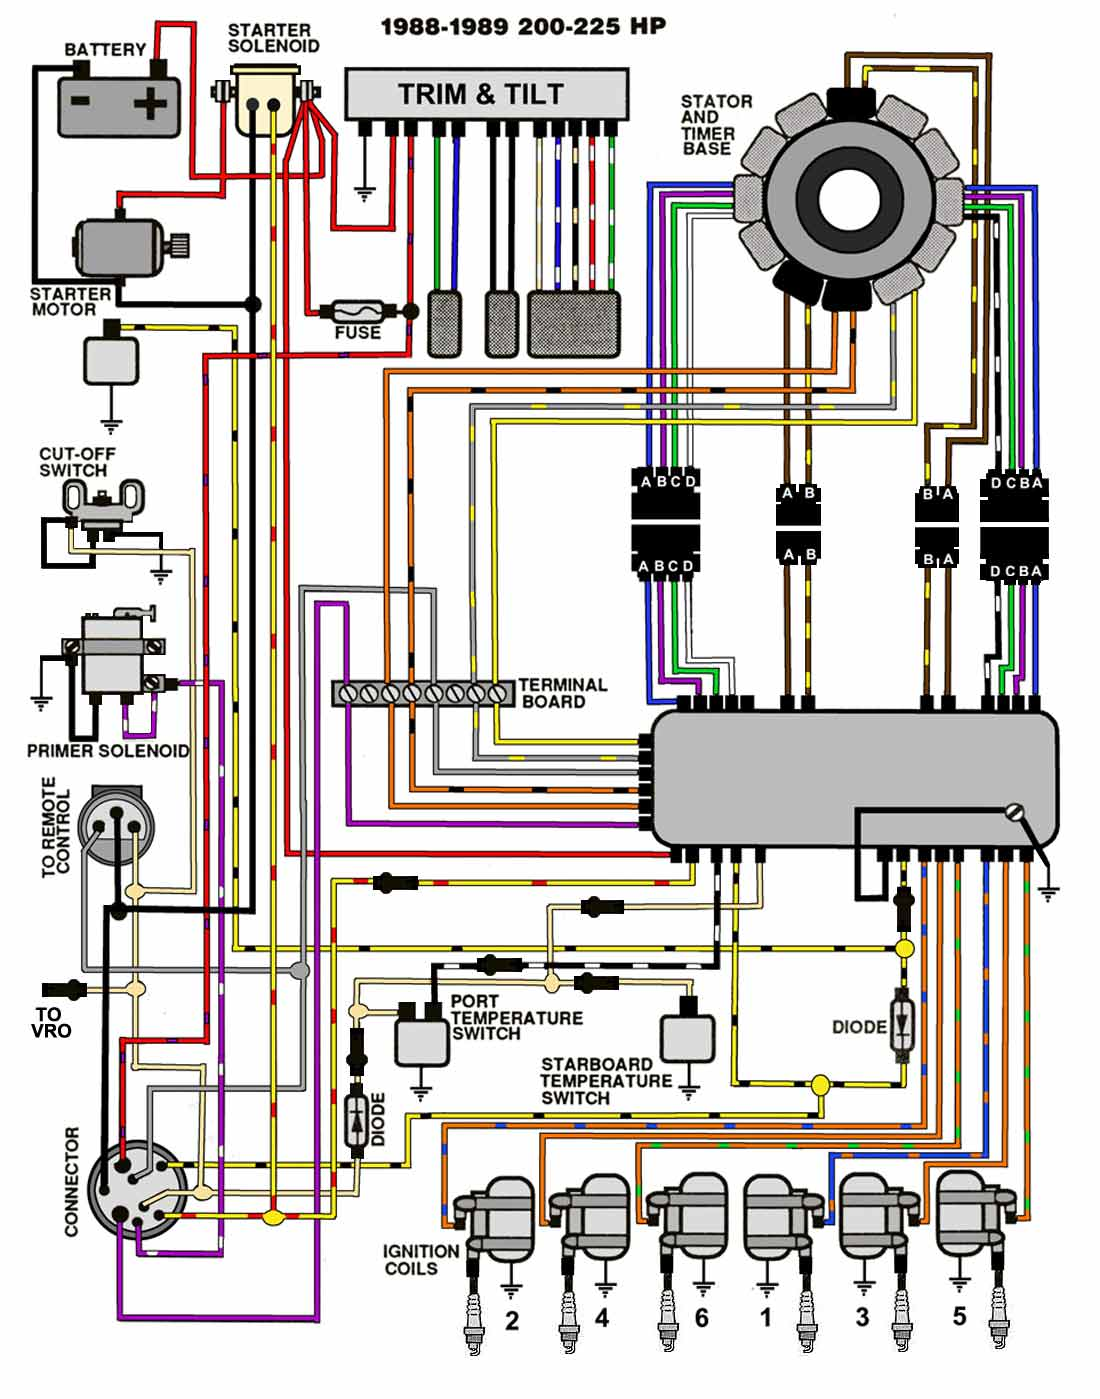 1988_89_200_225 evinrude ignition wiring diagram evinrude 40 hp outboard diagrams OMC Sterndrive Identification at bayanpartner.co